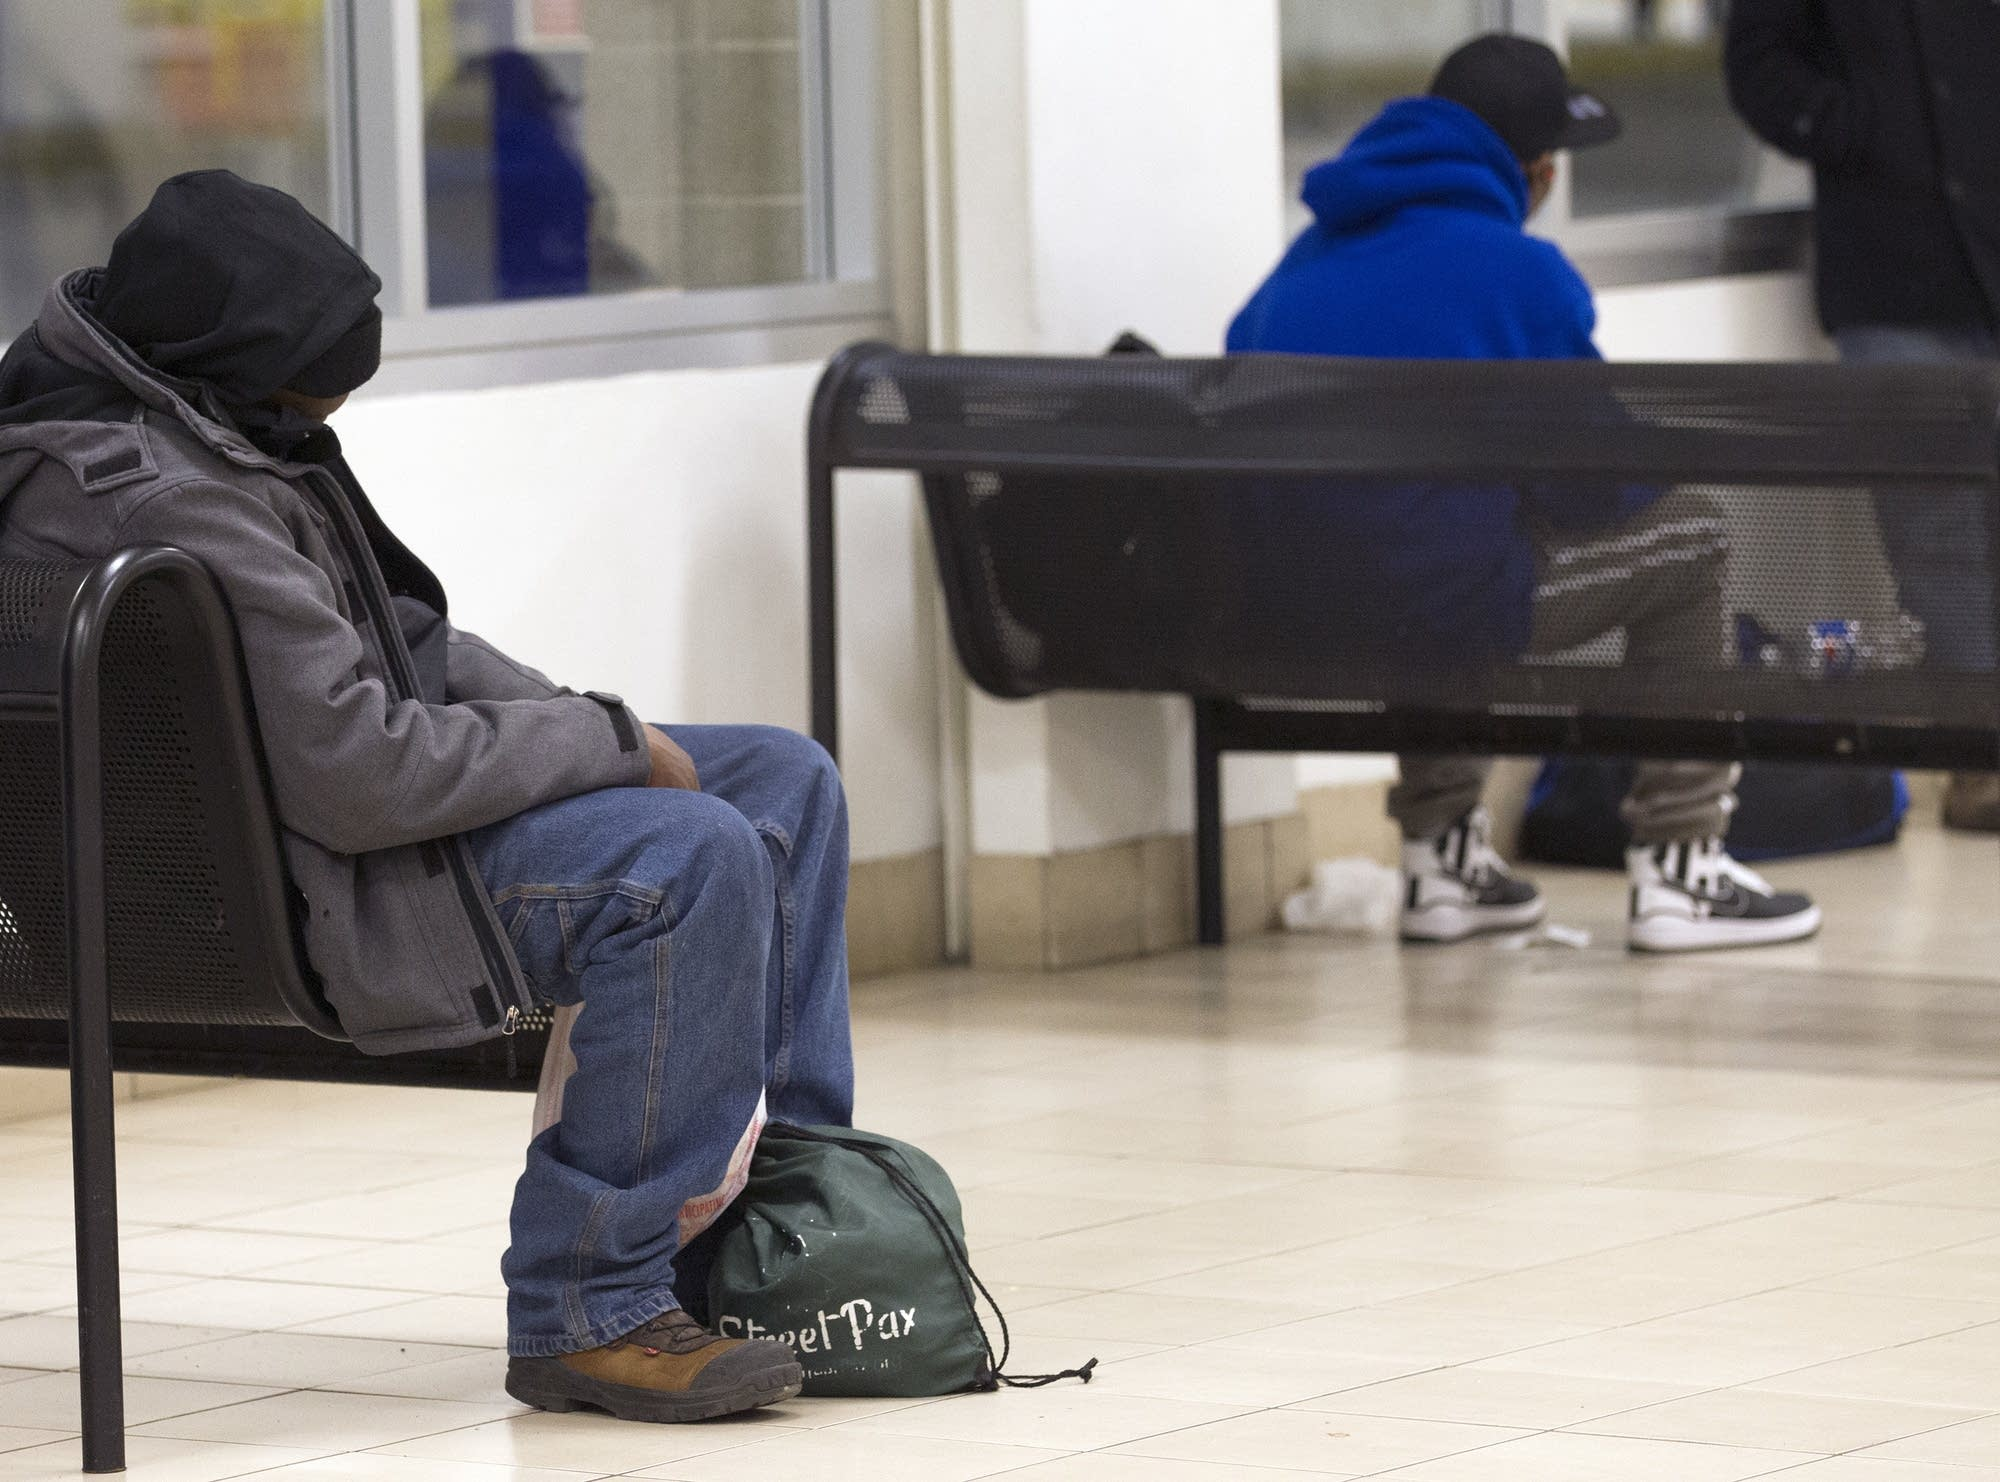 Many wait at light rail stations and board trains as a place to sleep.